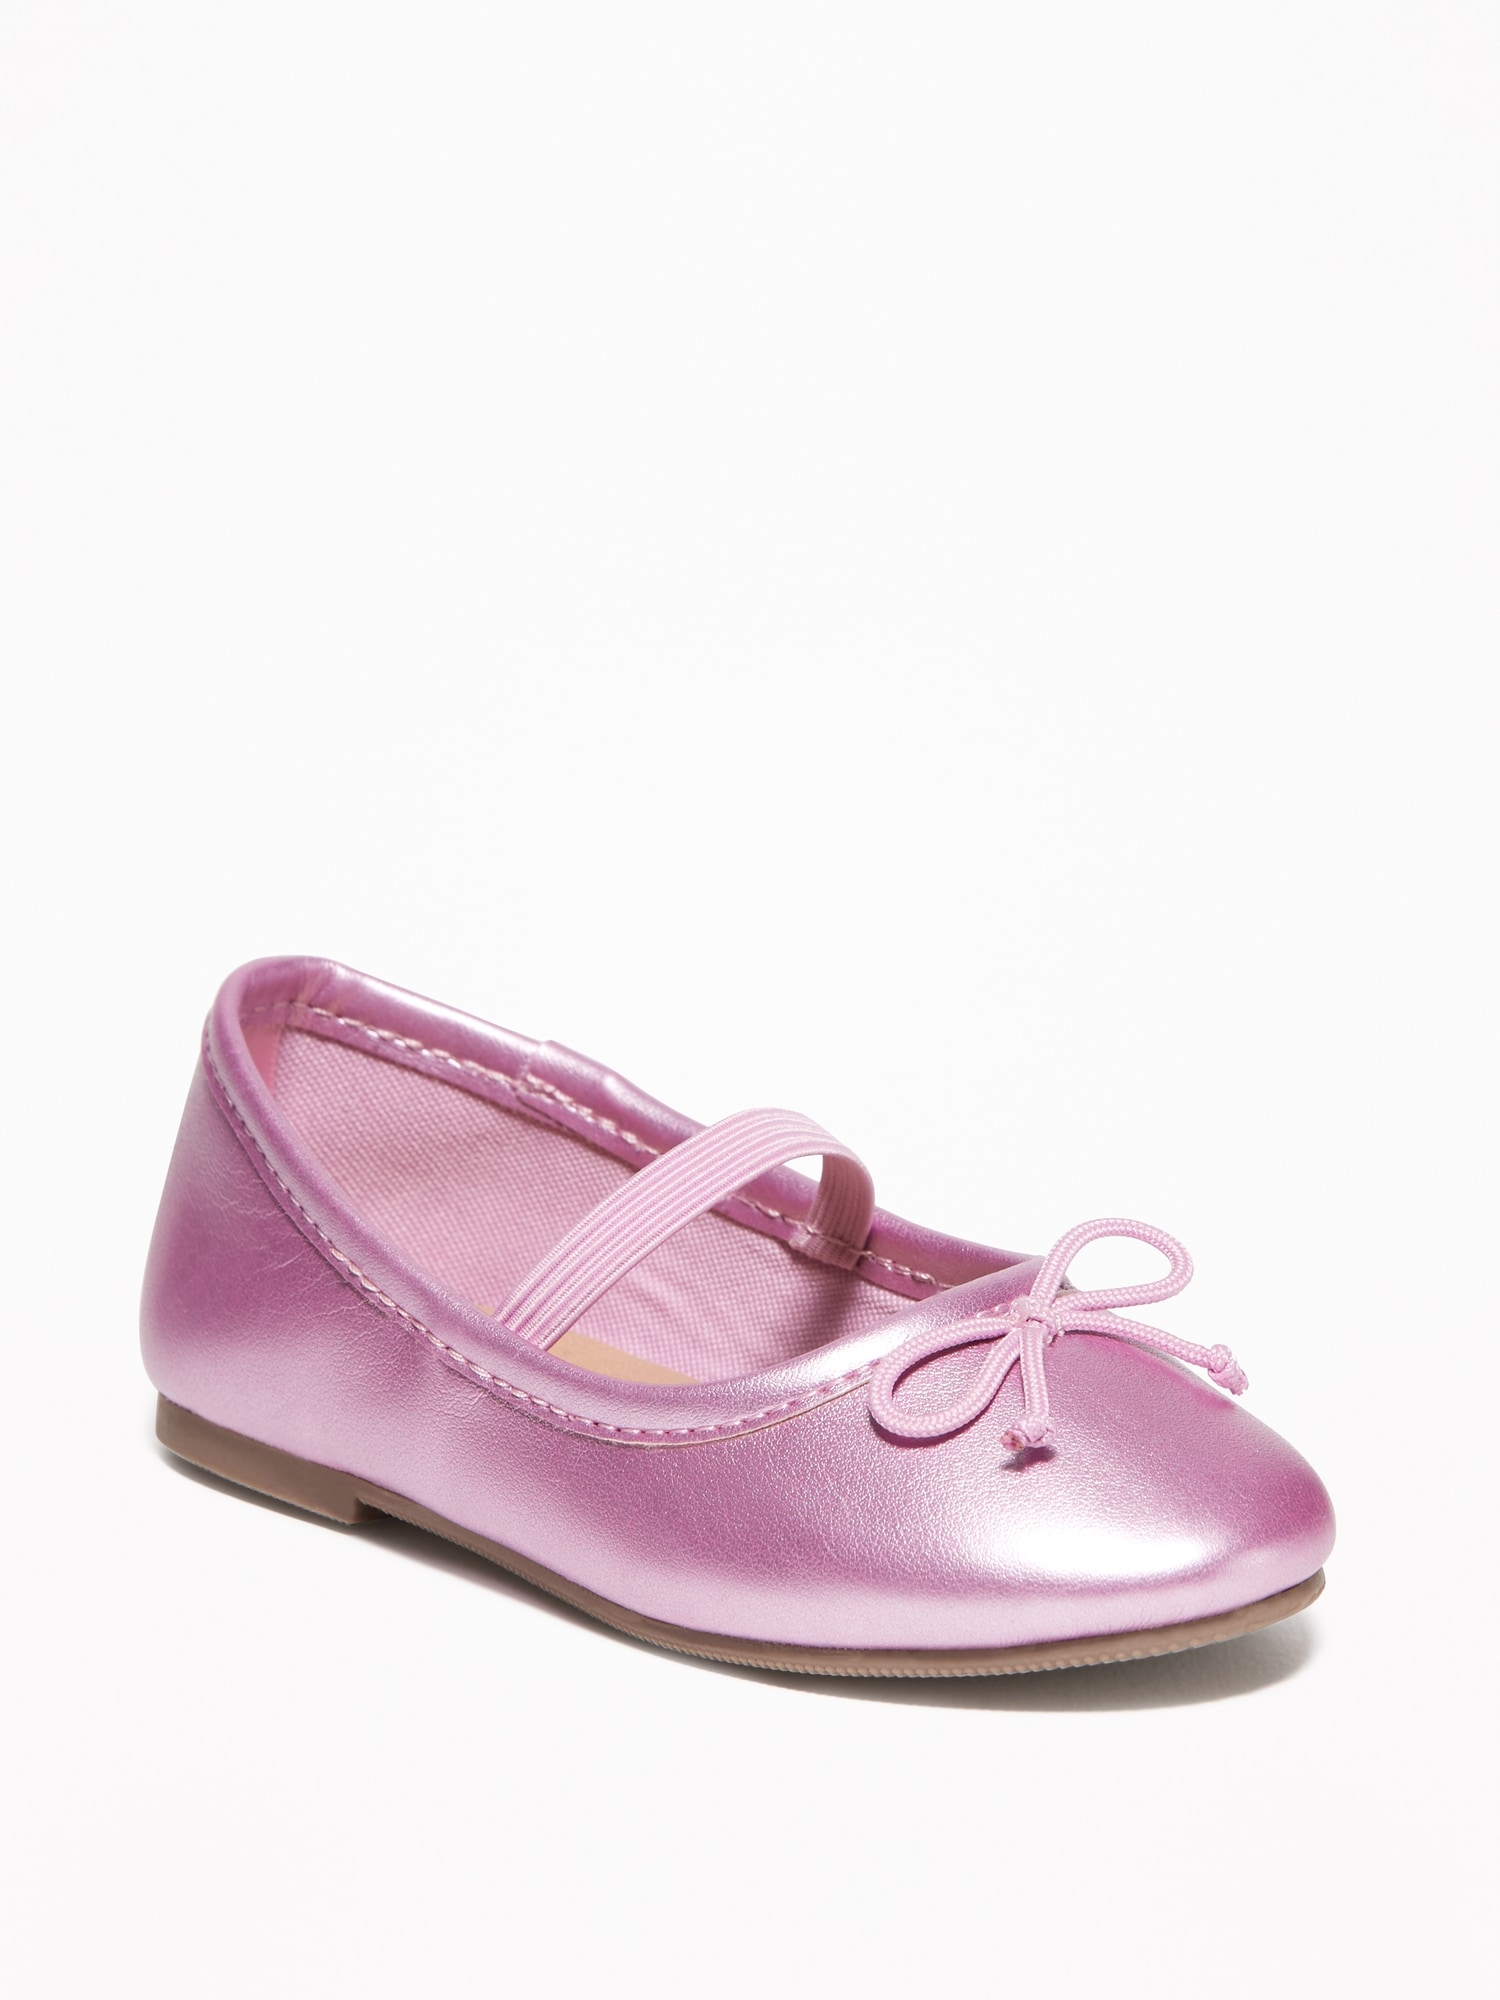 664831b297f Metallic Faux-Leather Ballet Flats for Toddler Girls